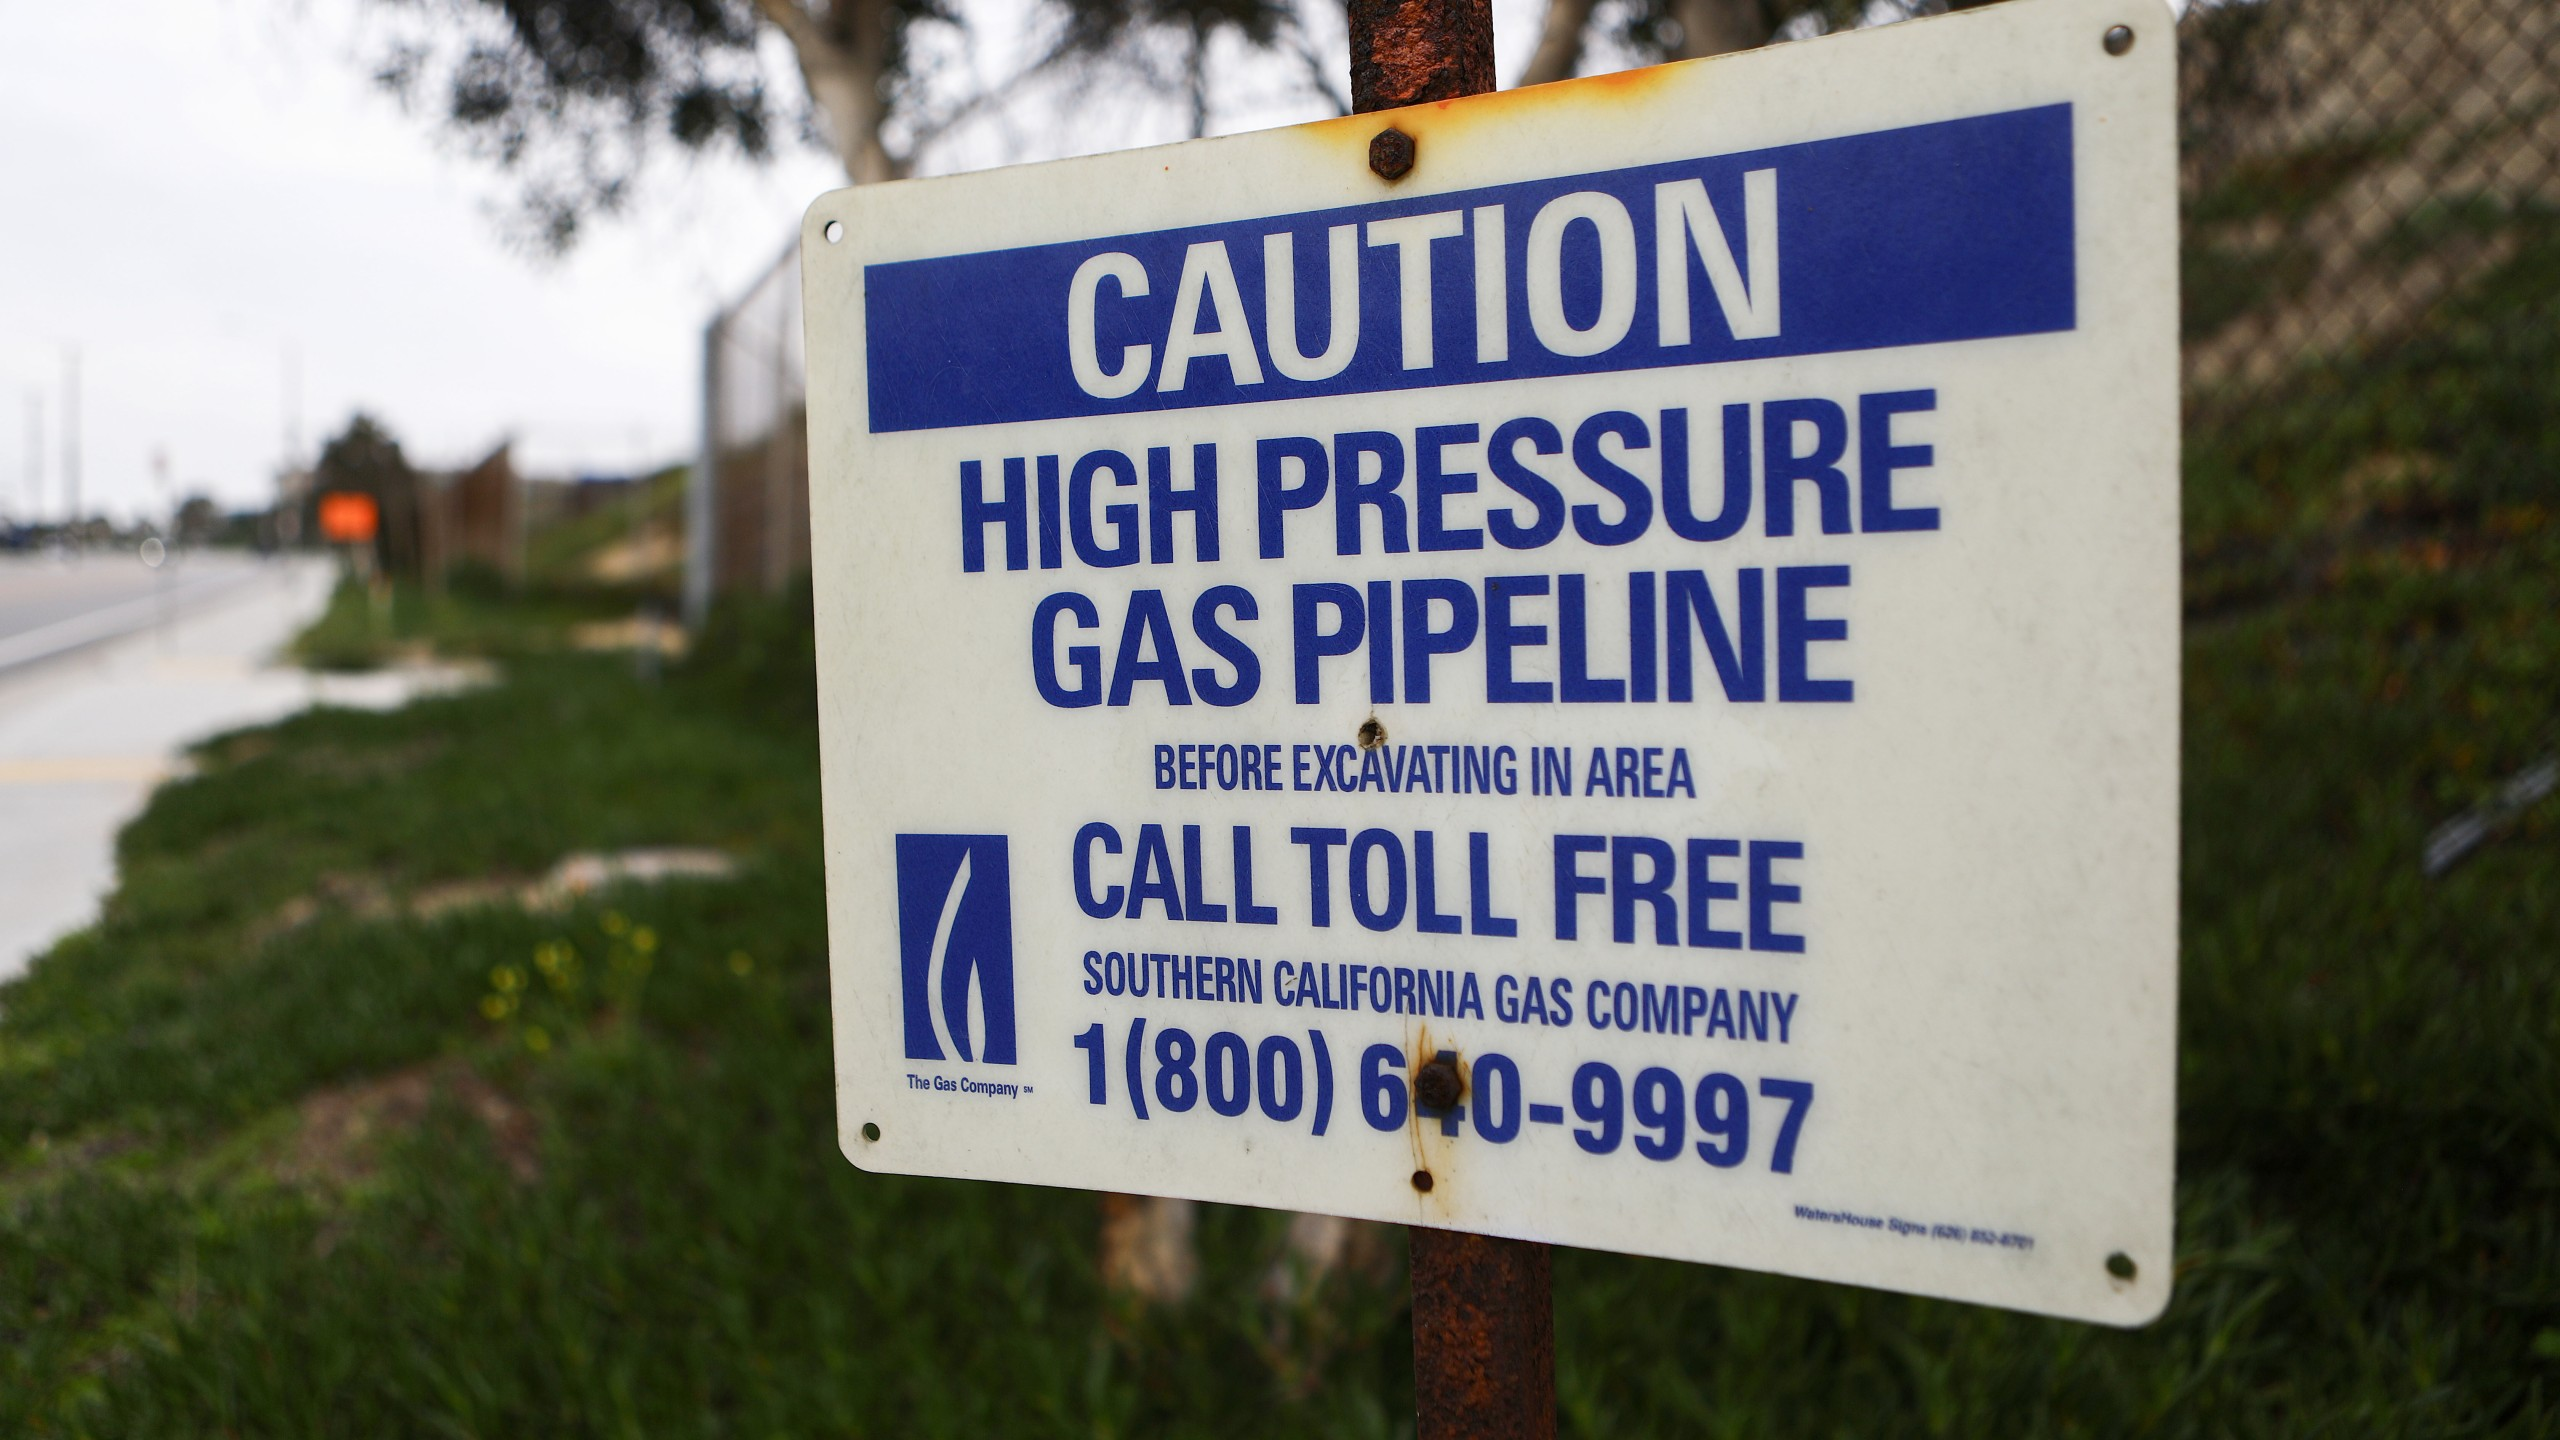 A sign warns of a gas pipeline mounted in El Segundo on Feb. 12, 2019. (Credit: Mario Tama/Getty Images)